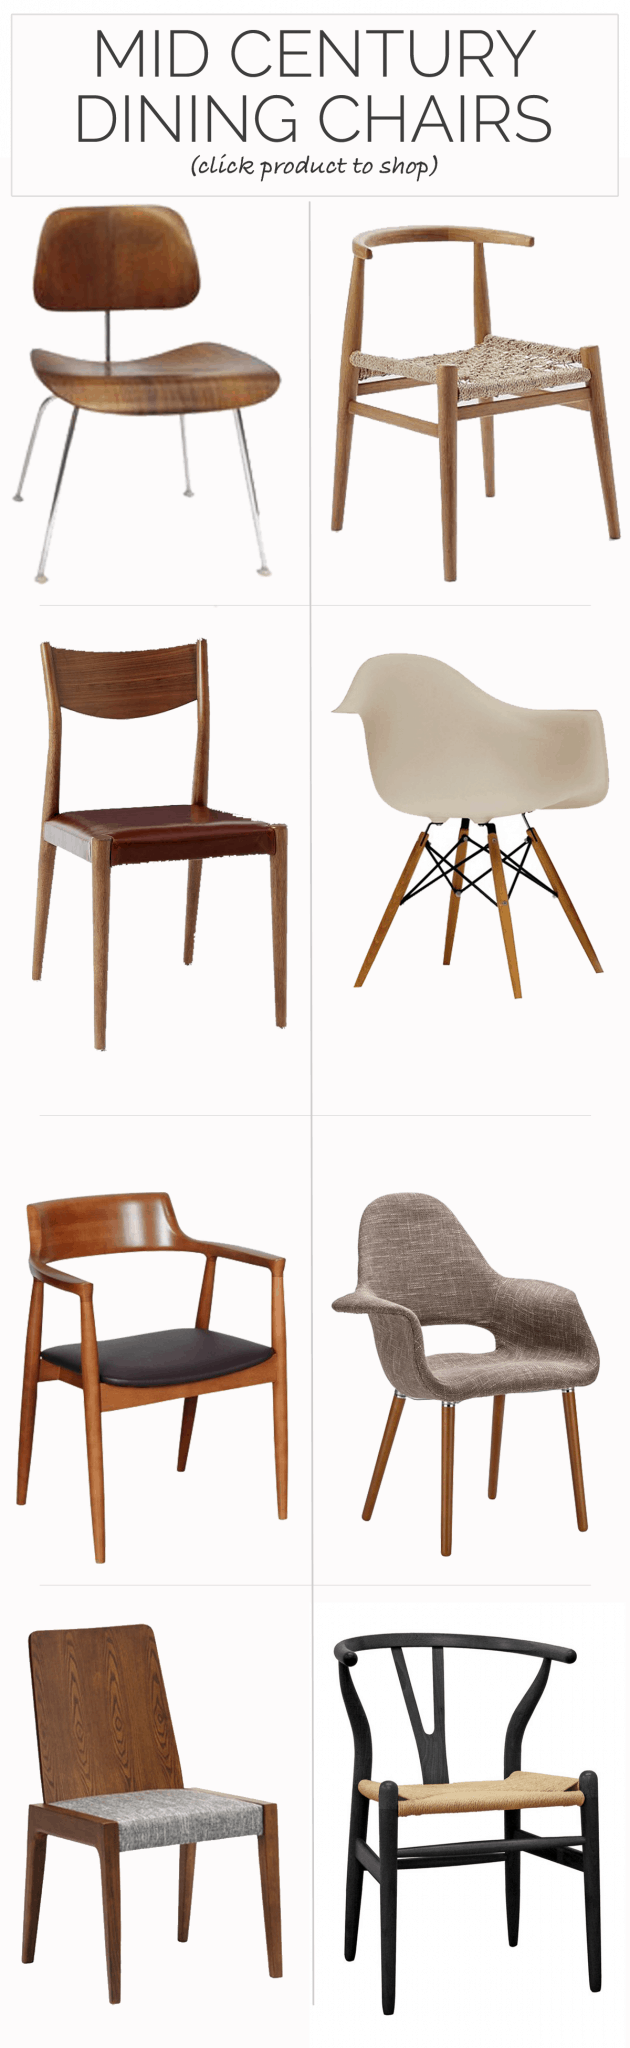 The best mid century dining chairs my style vita for Mid century modern style chairs